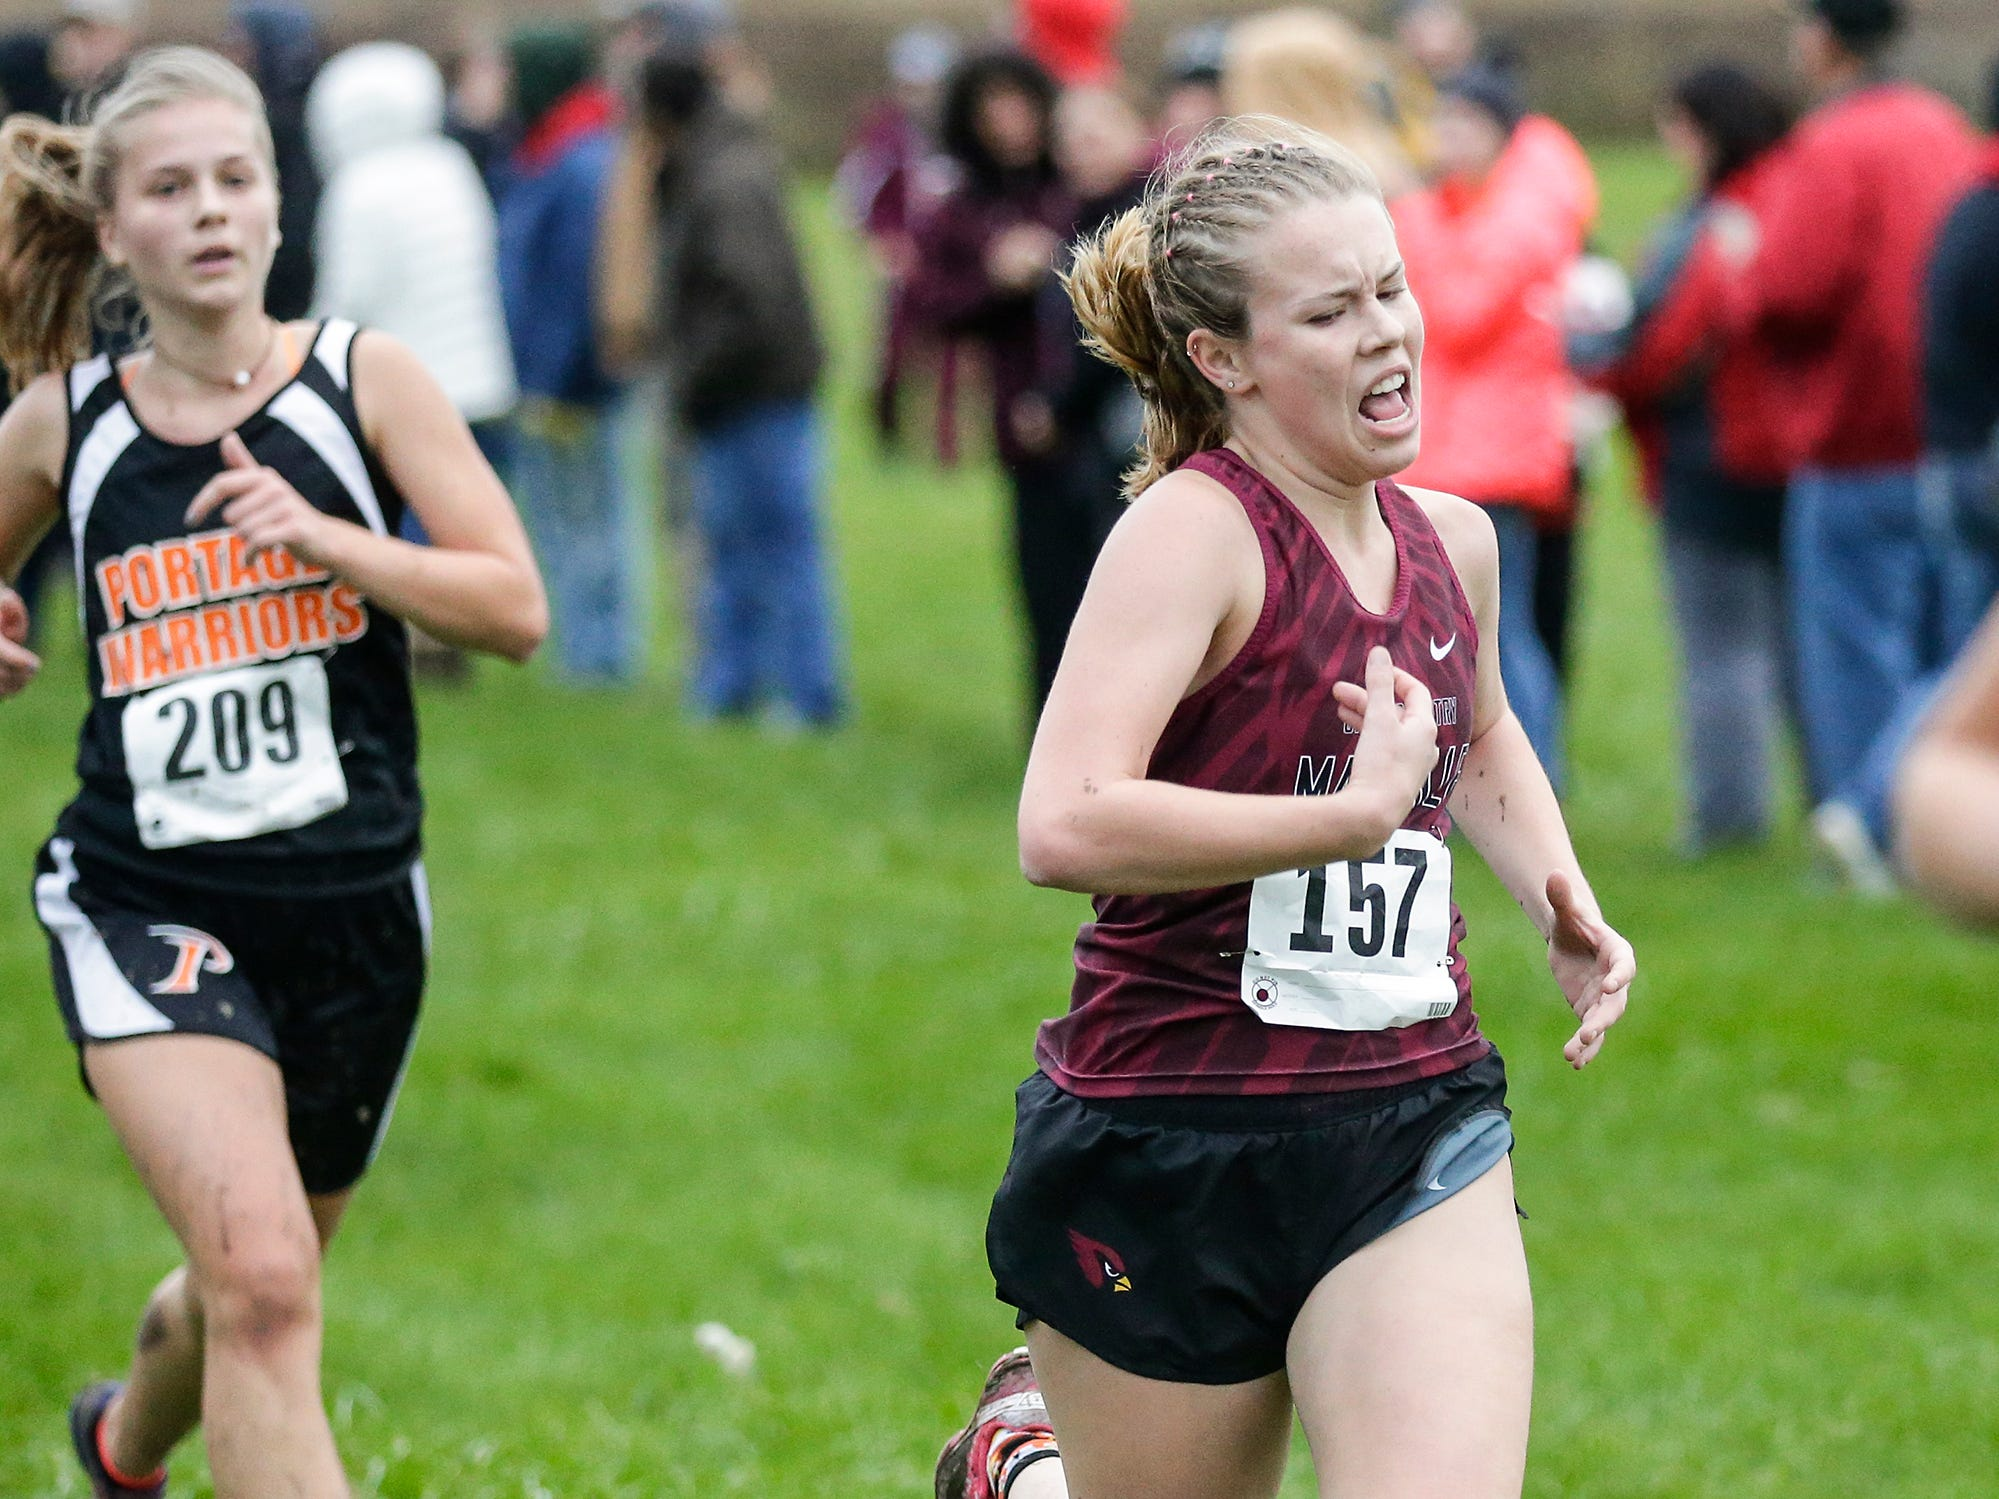 Mayville High School's Catlyn Mahoney runs in the WIAA Division two Mayville sectional cross country meet at the Mayville golf course Friday, October 19, 2018. Doug Raflik/USA TODAY NETWORK-Wisconsin